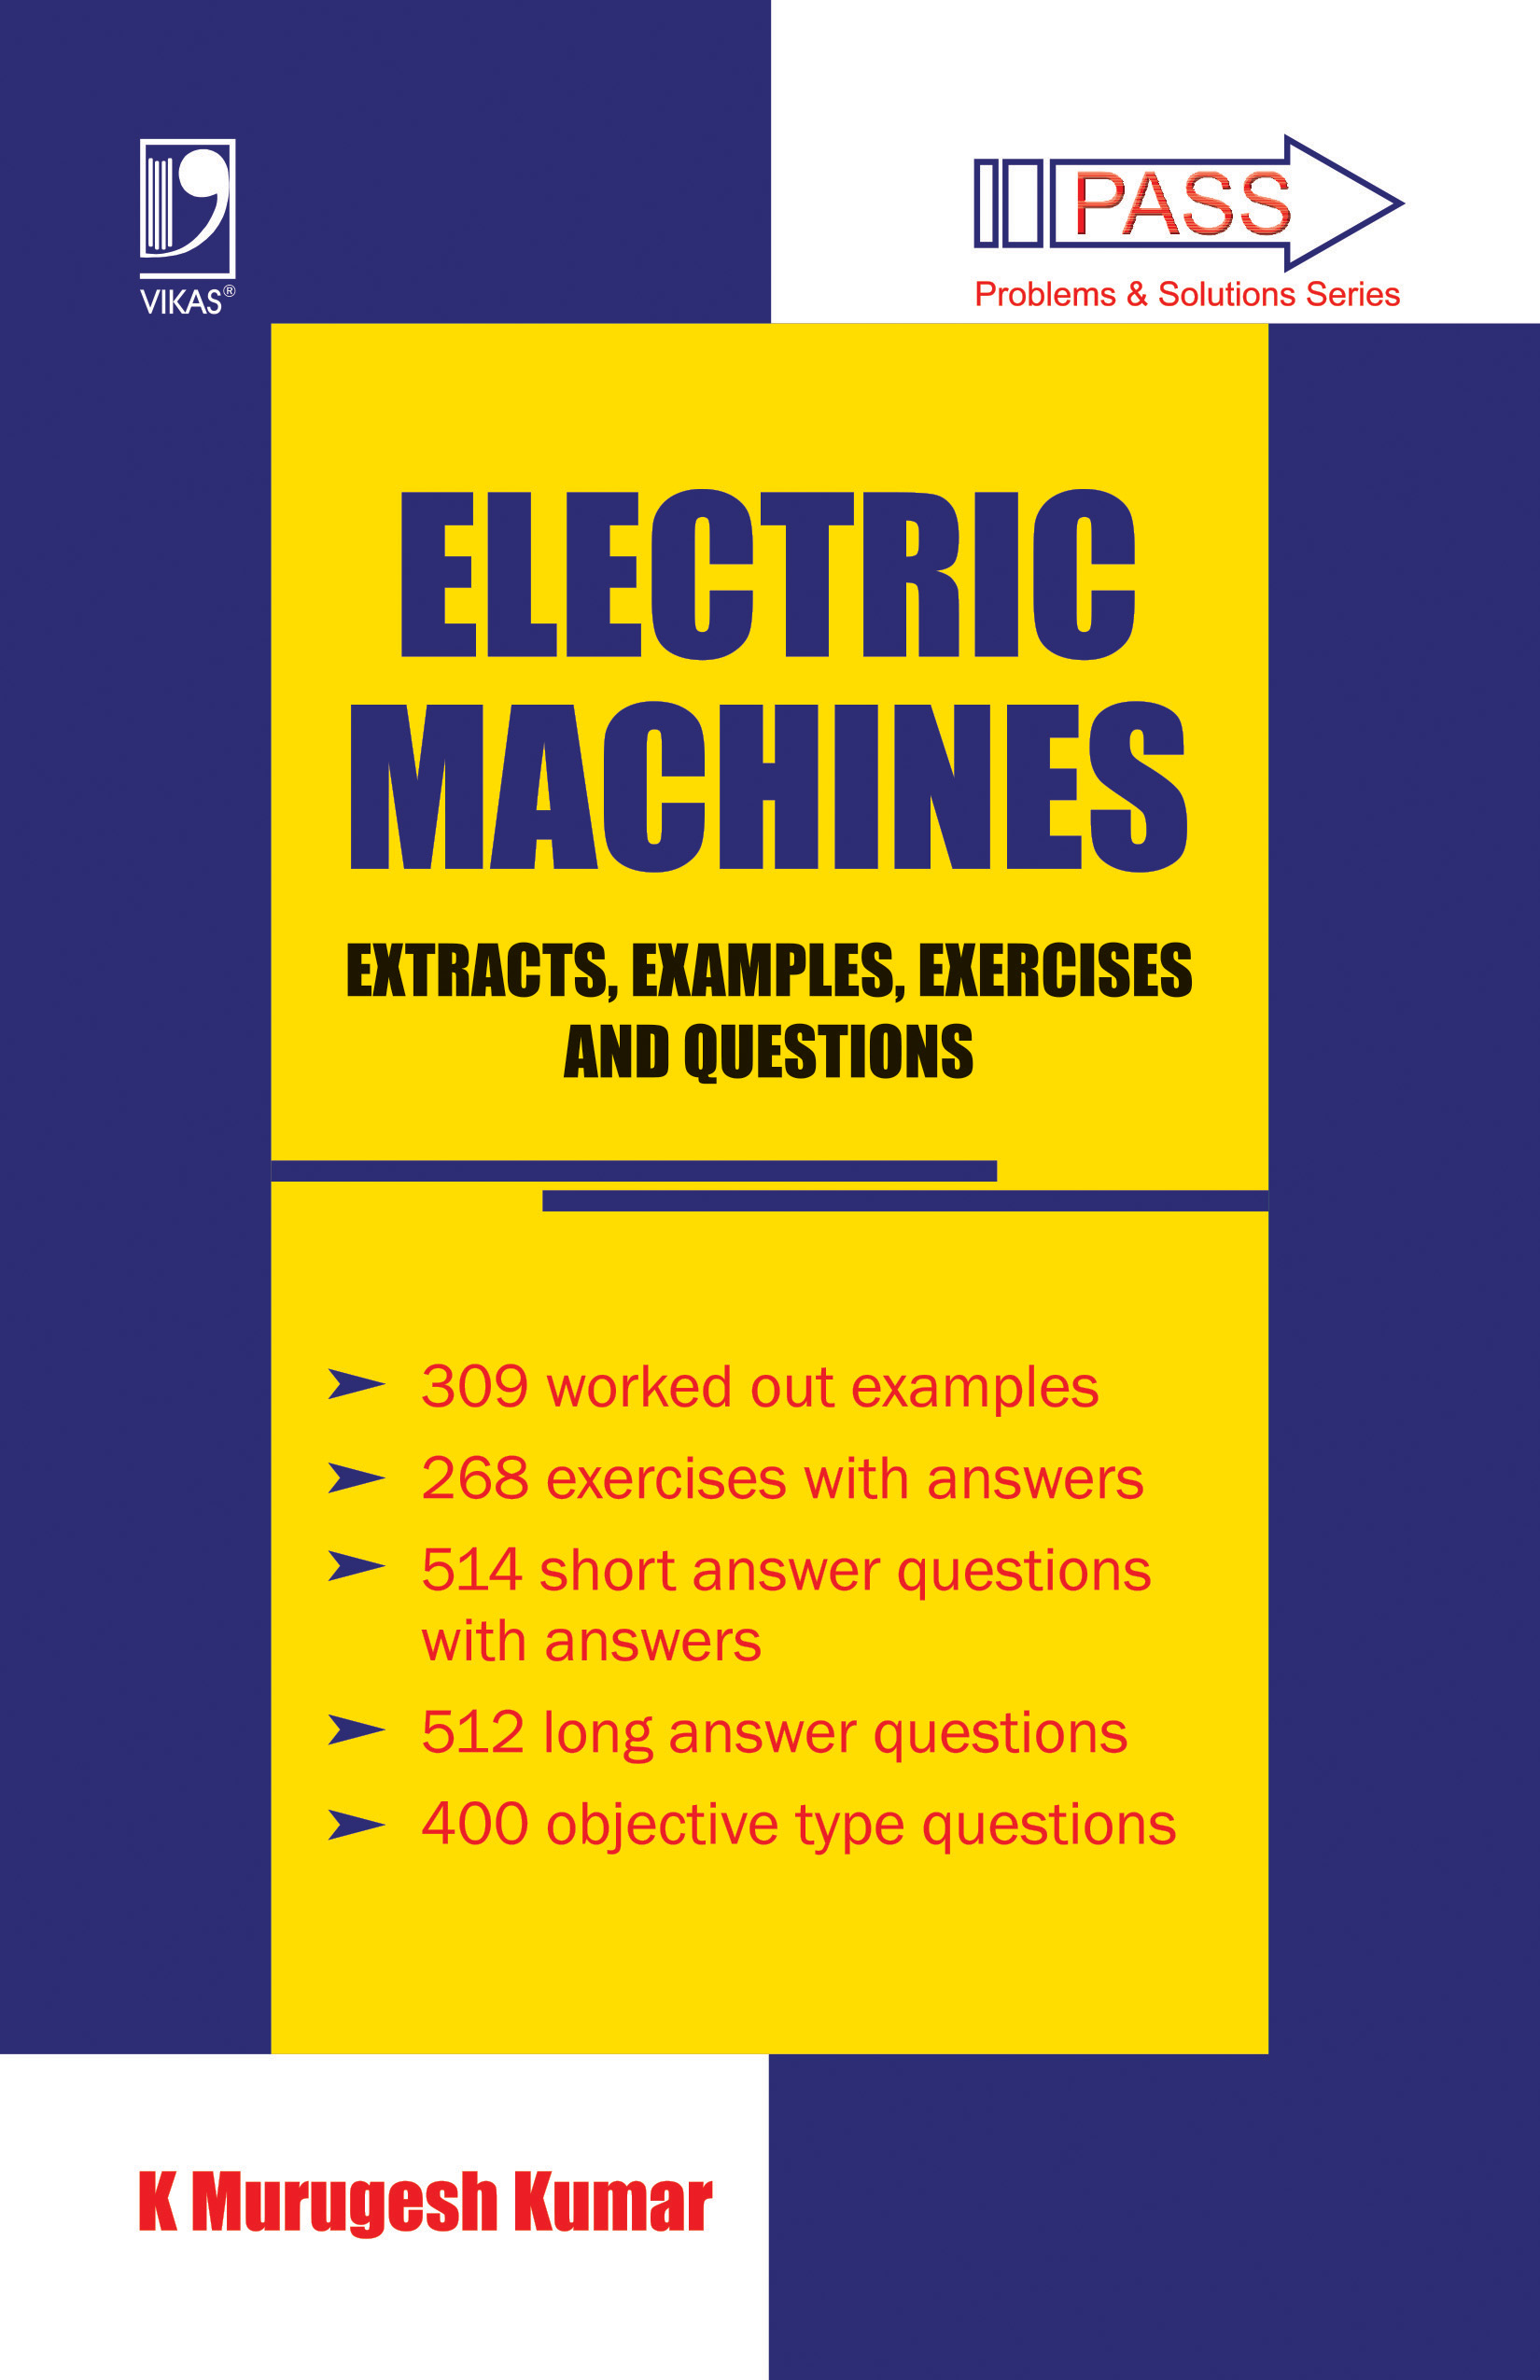 Electric Machines: Extracts, Examples, Exercises and Questions